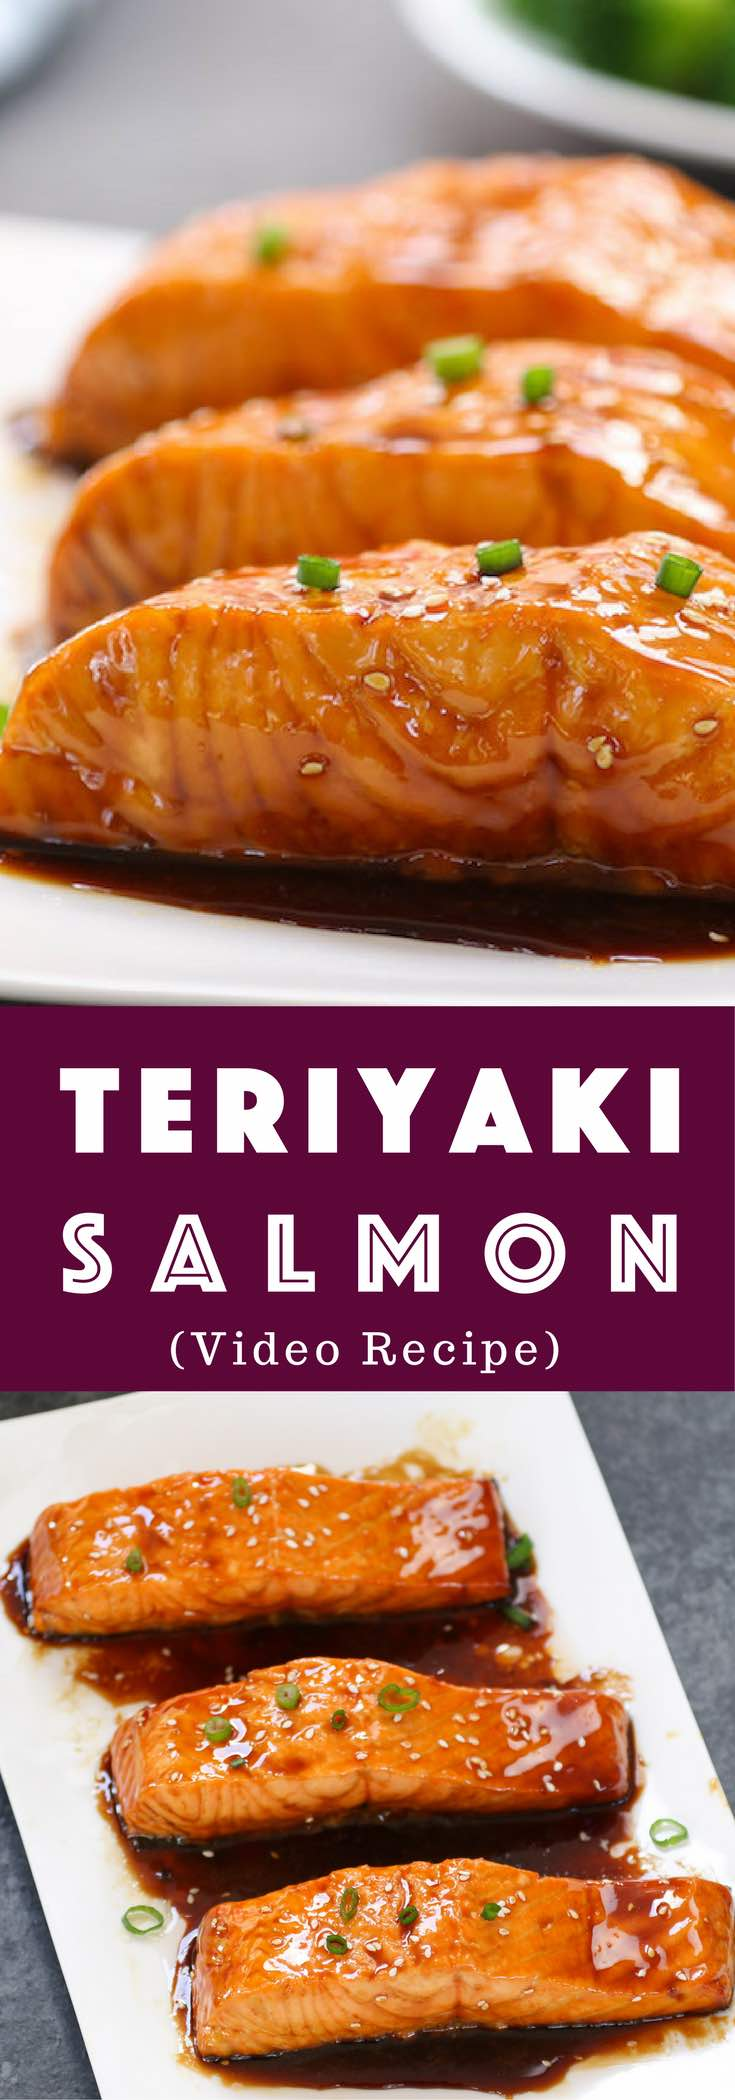 The easiest, most unbelievably delicious Teriyaki Salmon. And it'll be on your dinner table in just 20 minutes. All you need is only a few ingredients: salmon, soy sauce, mirin, white wine and sugar. One of the best Asian dinner ideas! Served with rice and broccoli. Quick and easy dinner recipe. Video recipe. | Tipbuzz.com